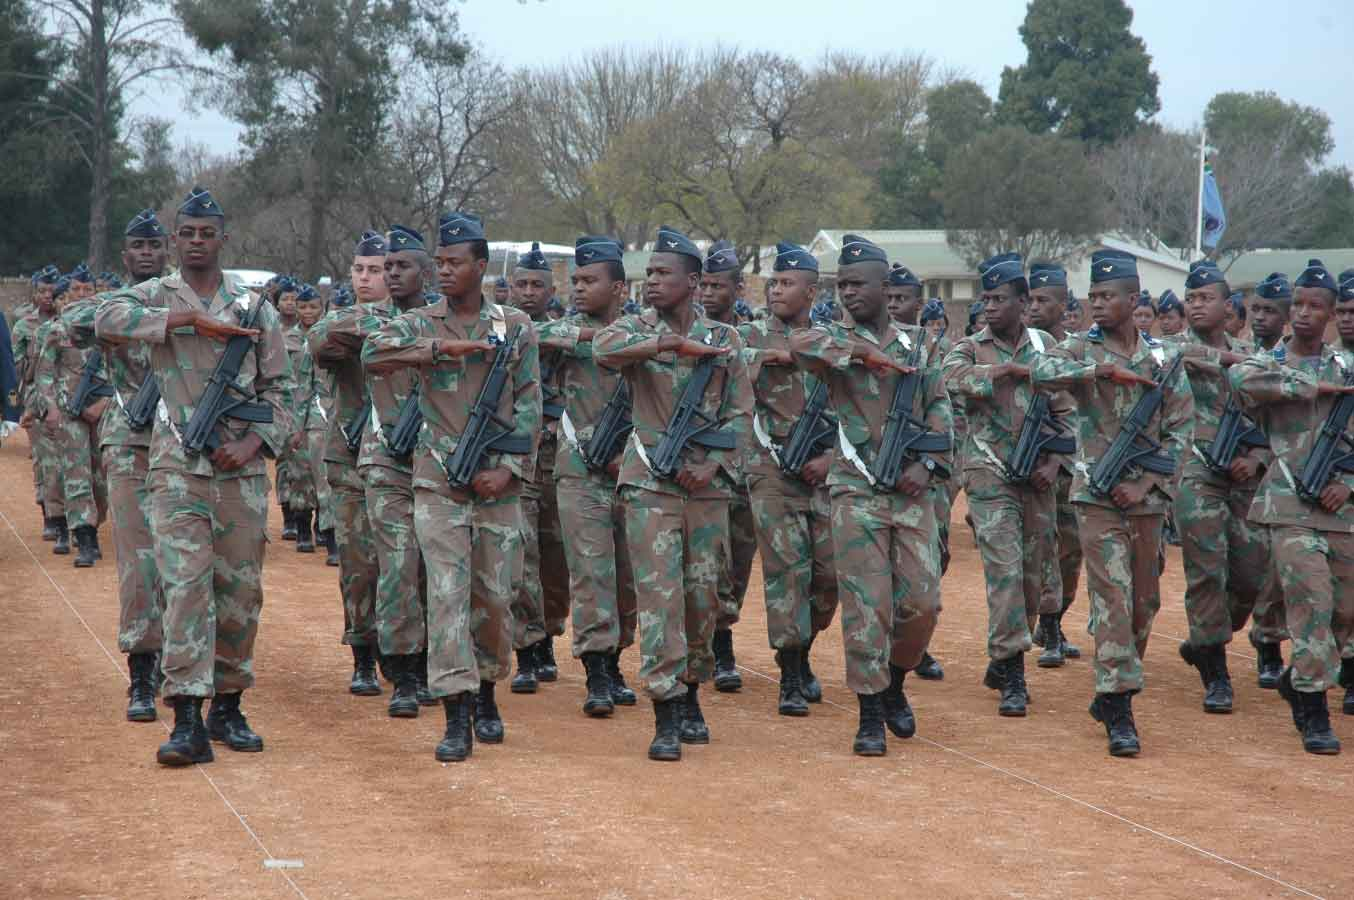 Who Has The Strongest Military In Africa?